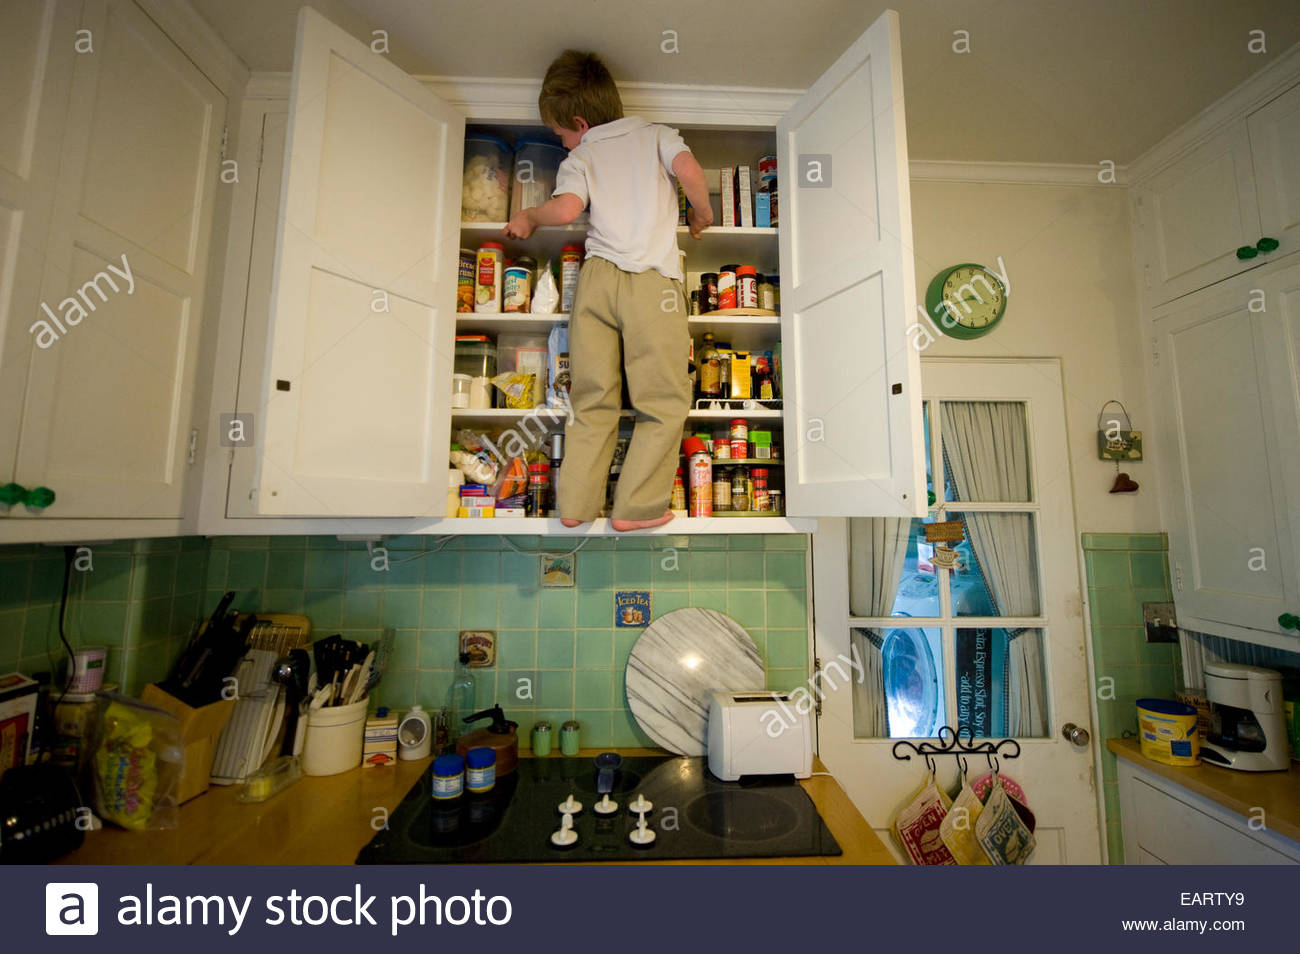 A young boy climbs the cabinets in a kitchen looking for food. Stock Photo